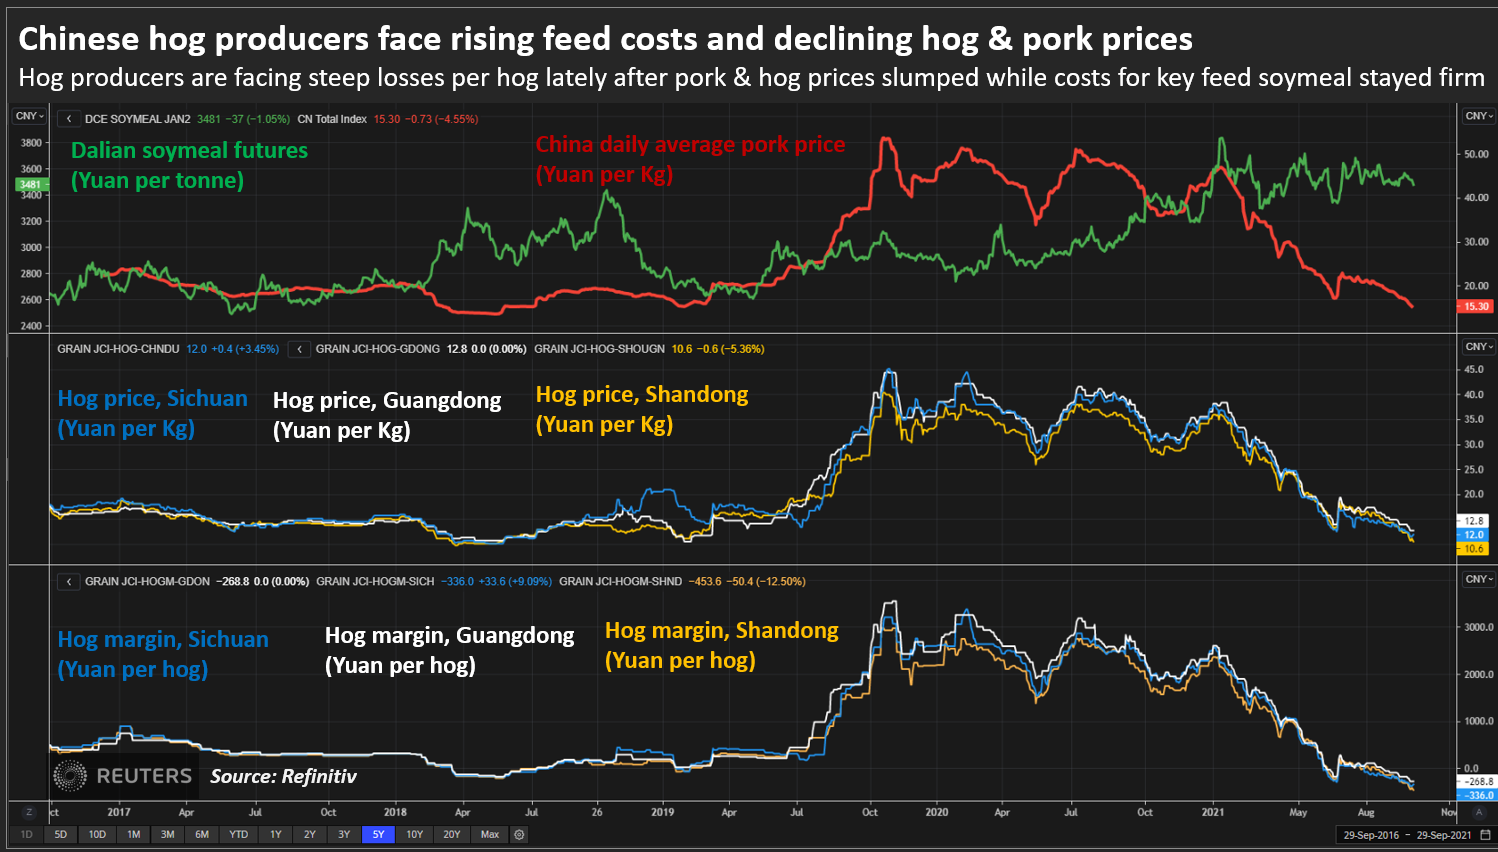 Chinese hog producers face rising feed costs and declining hog & pork prices